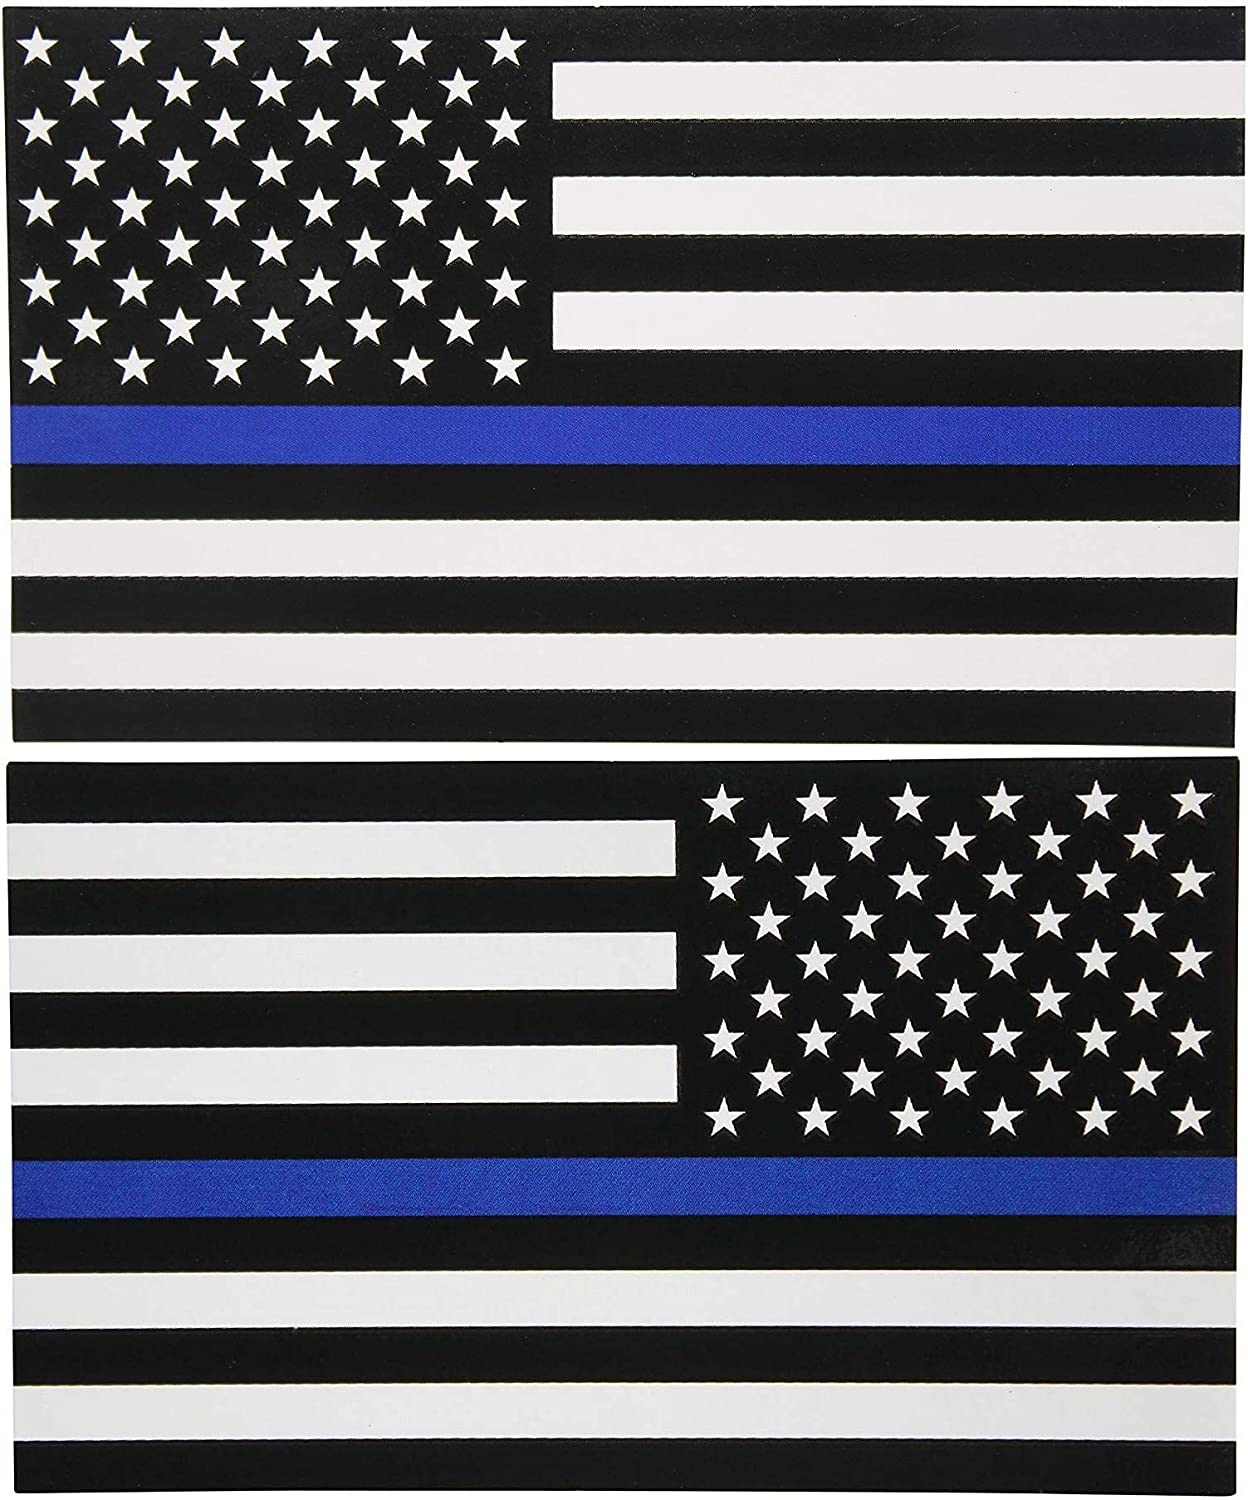 3 Inch Non-Reflective Thin Blue Line Rustic American Flag Sticker Decal